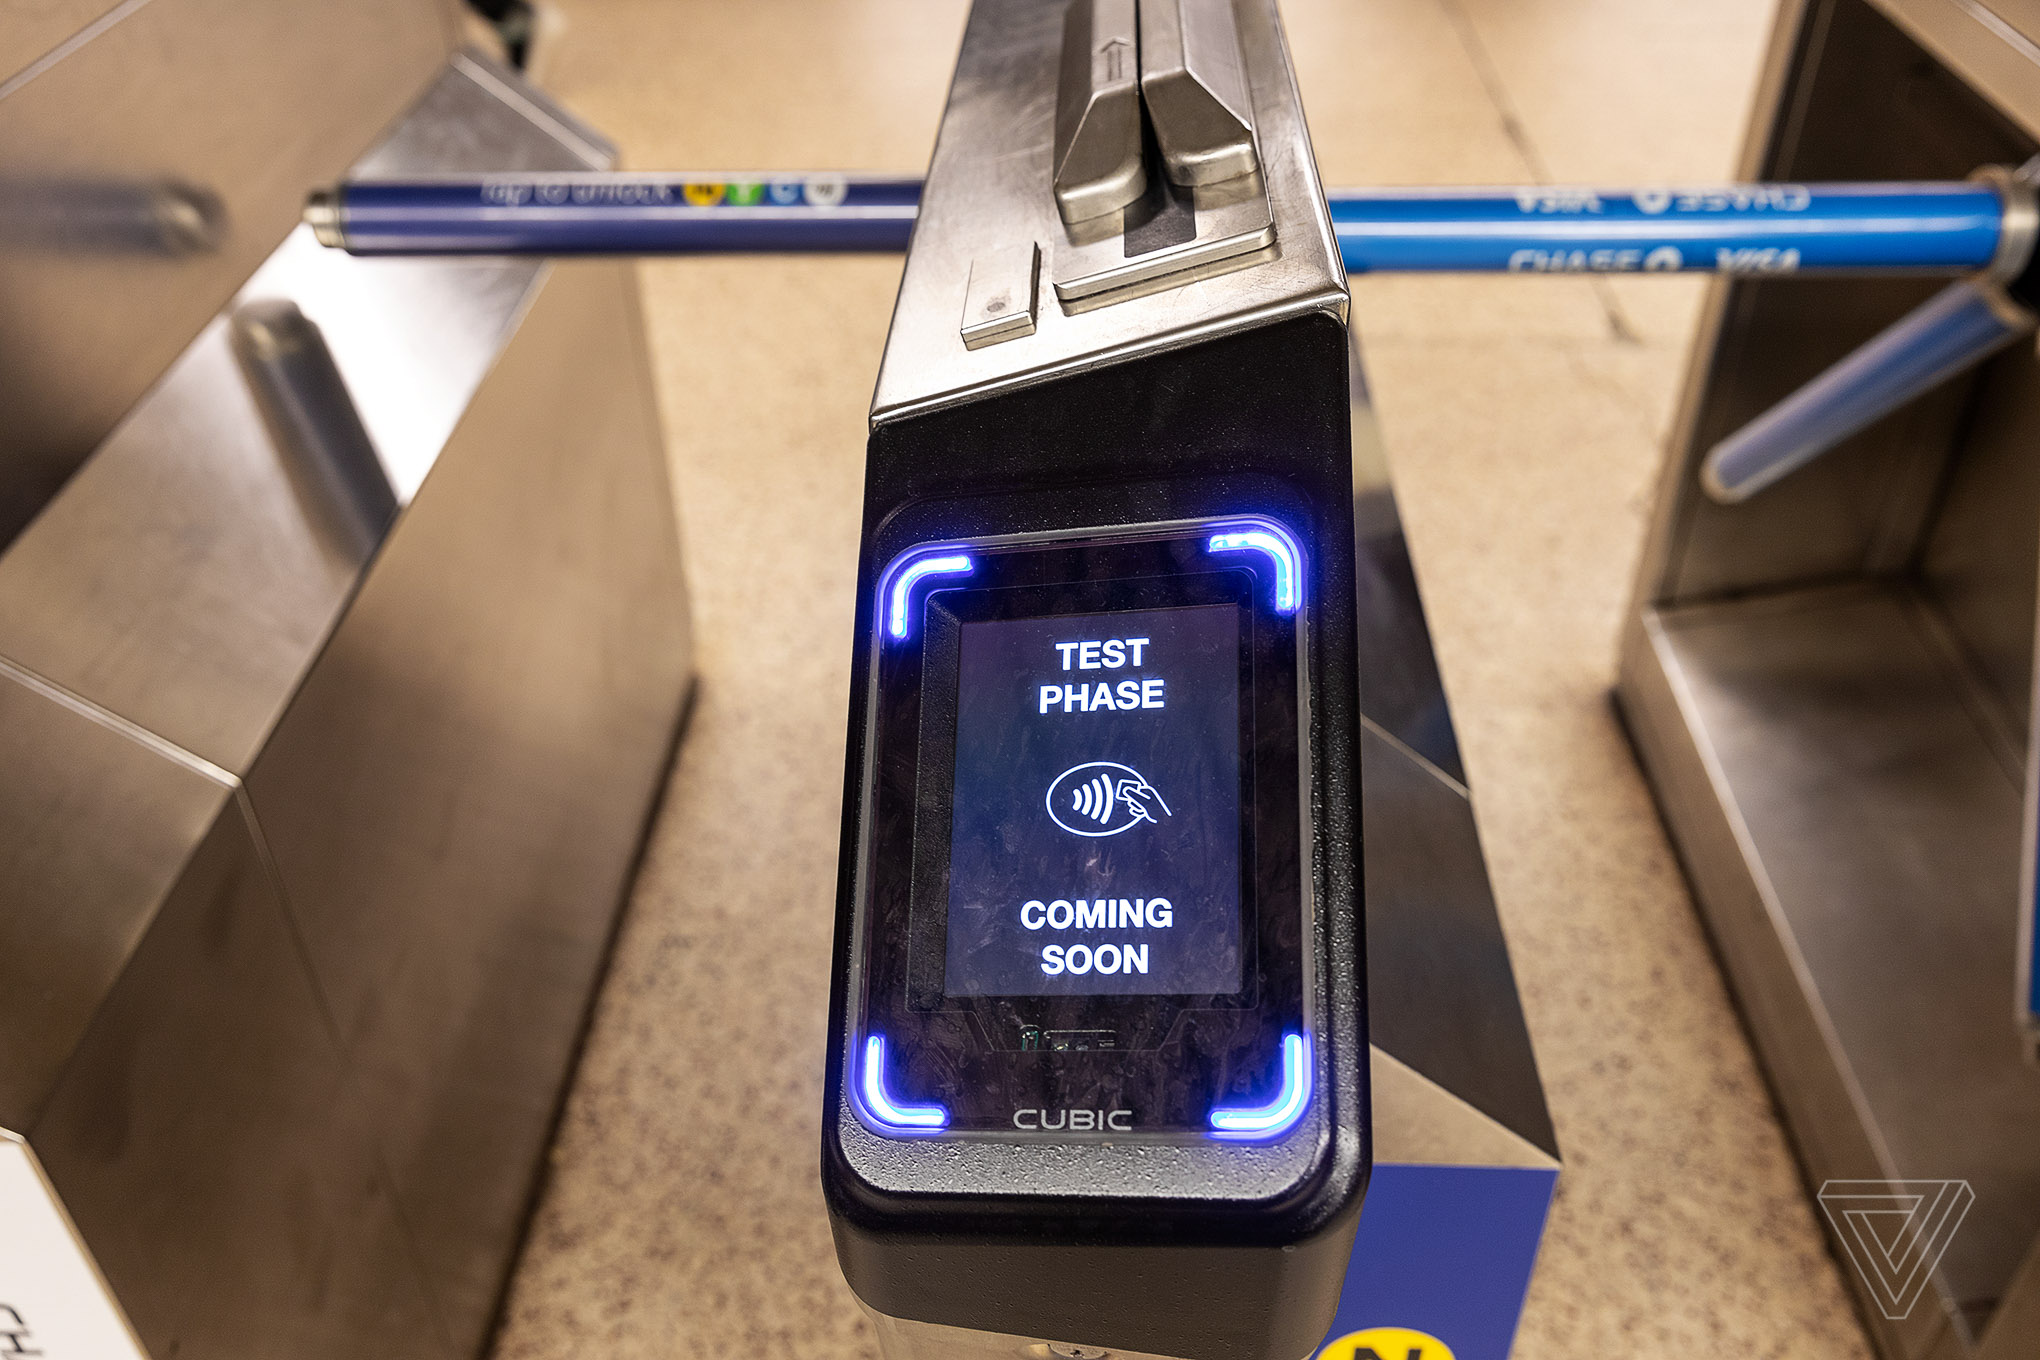 Apple Pay can be used to ride New York City's MTA transit starting